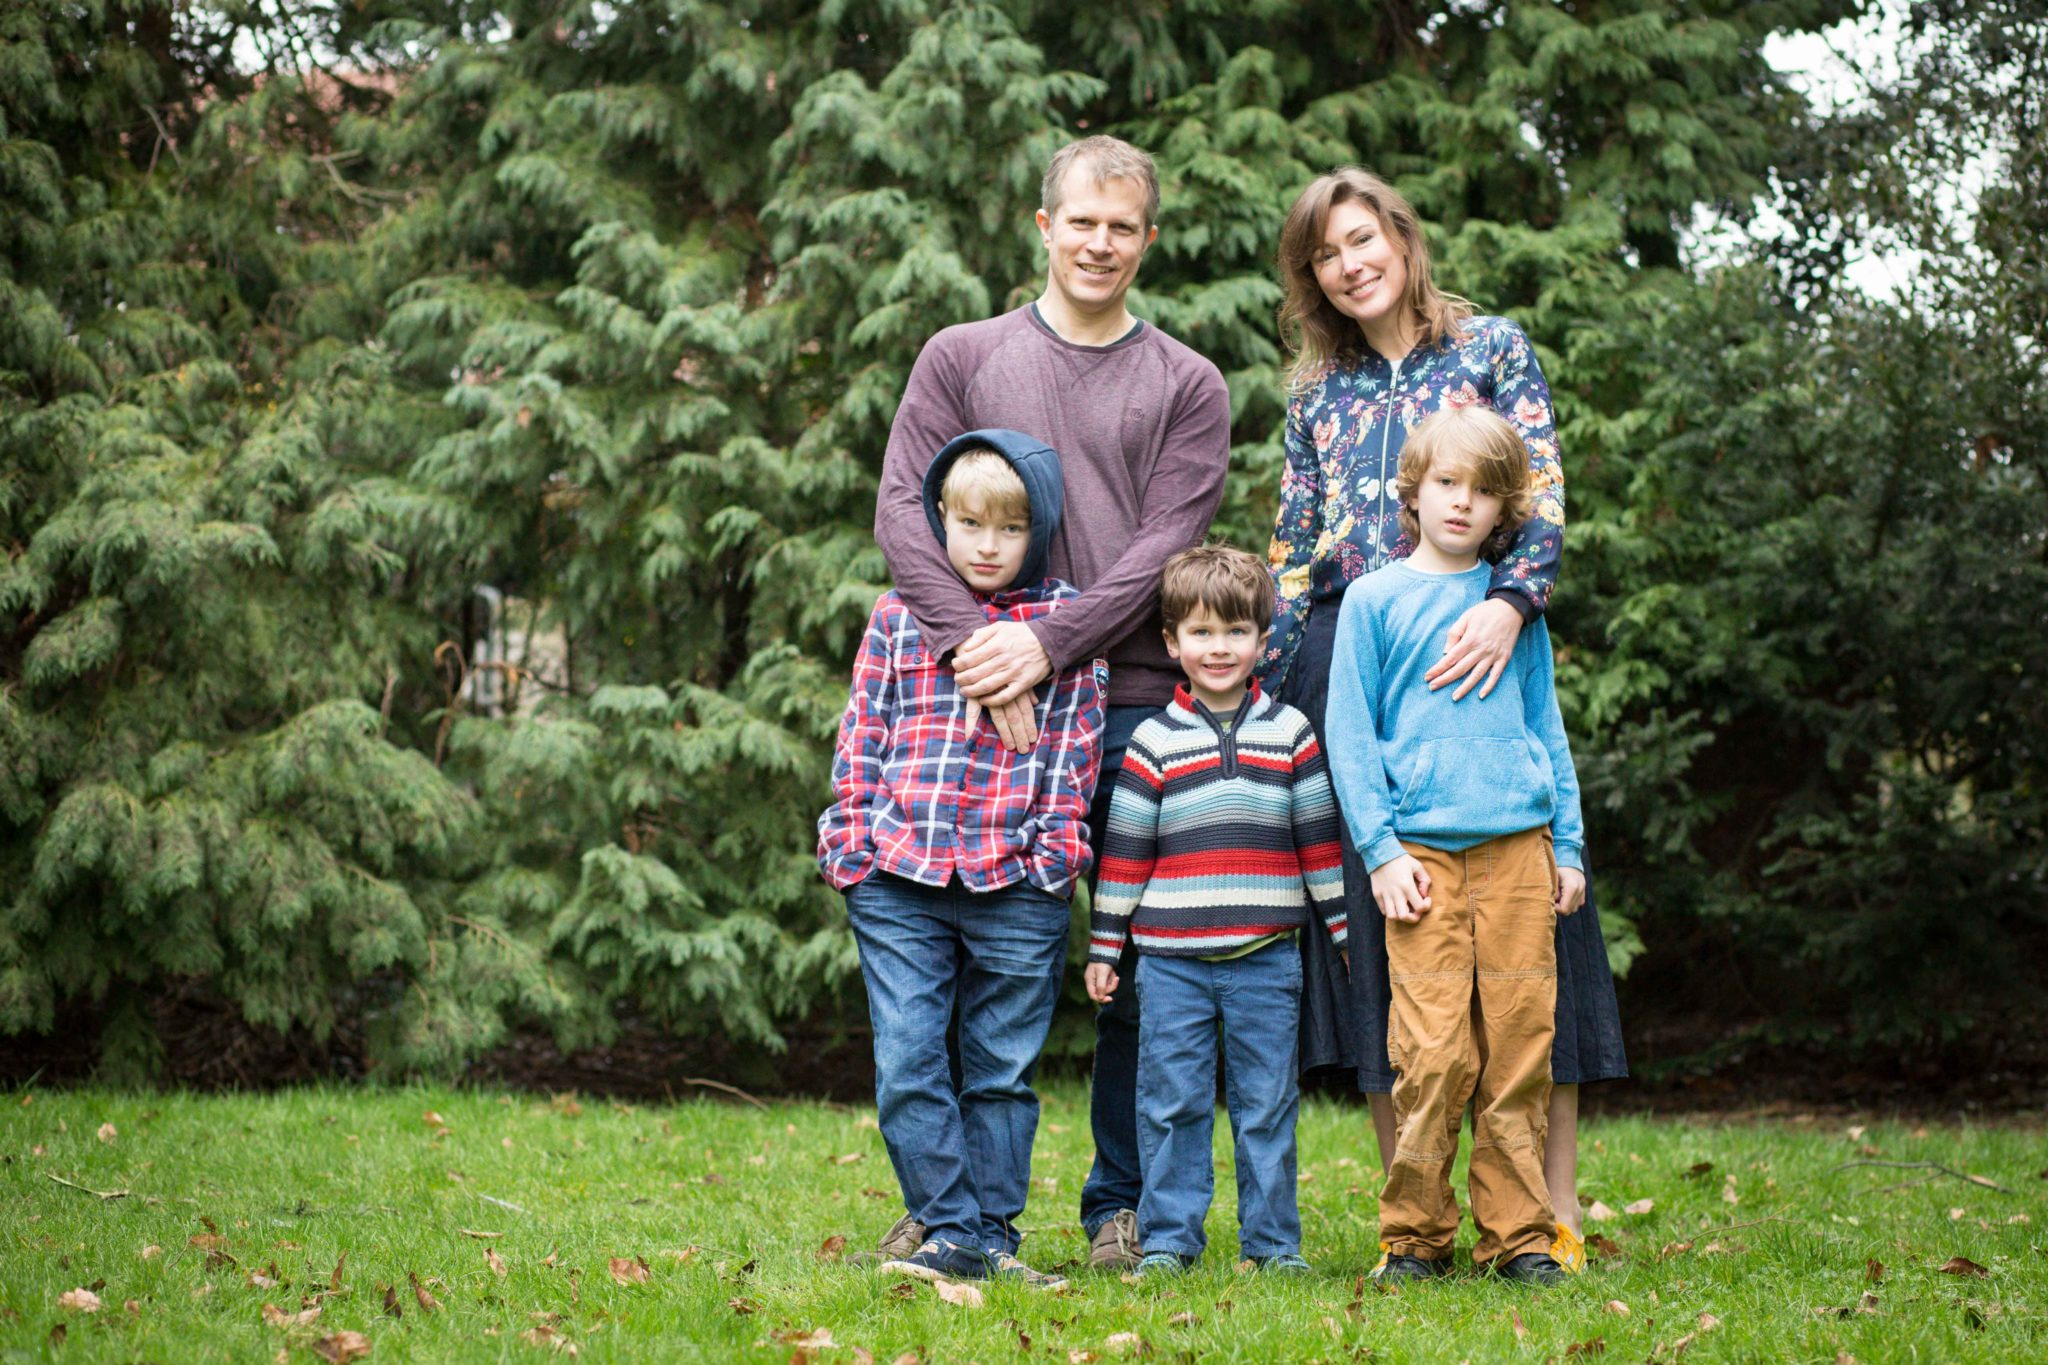 Family in local park relaxing for portrait image